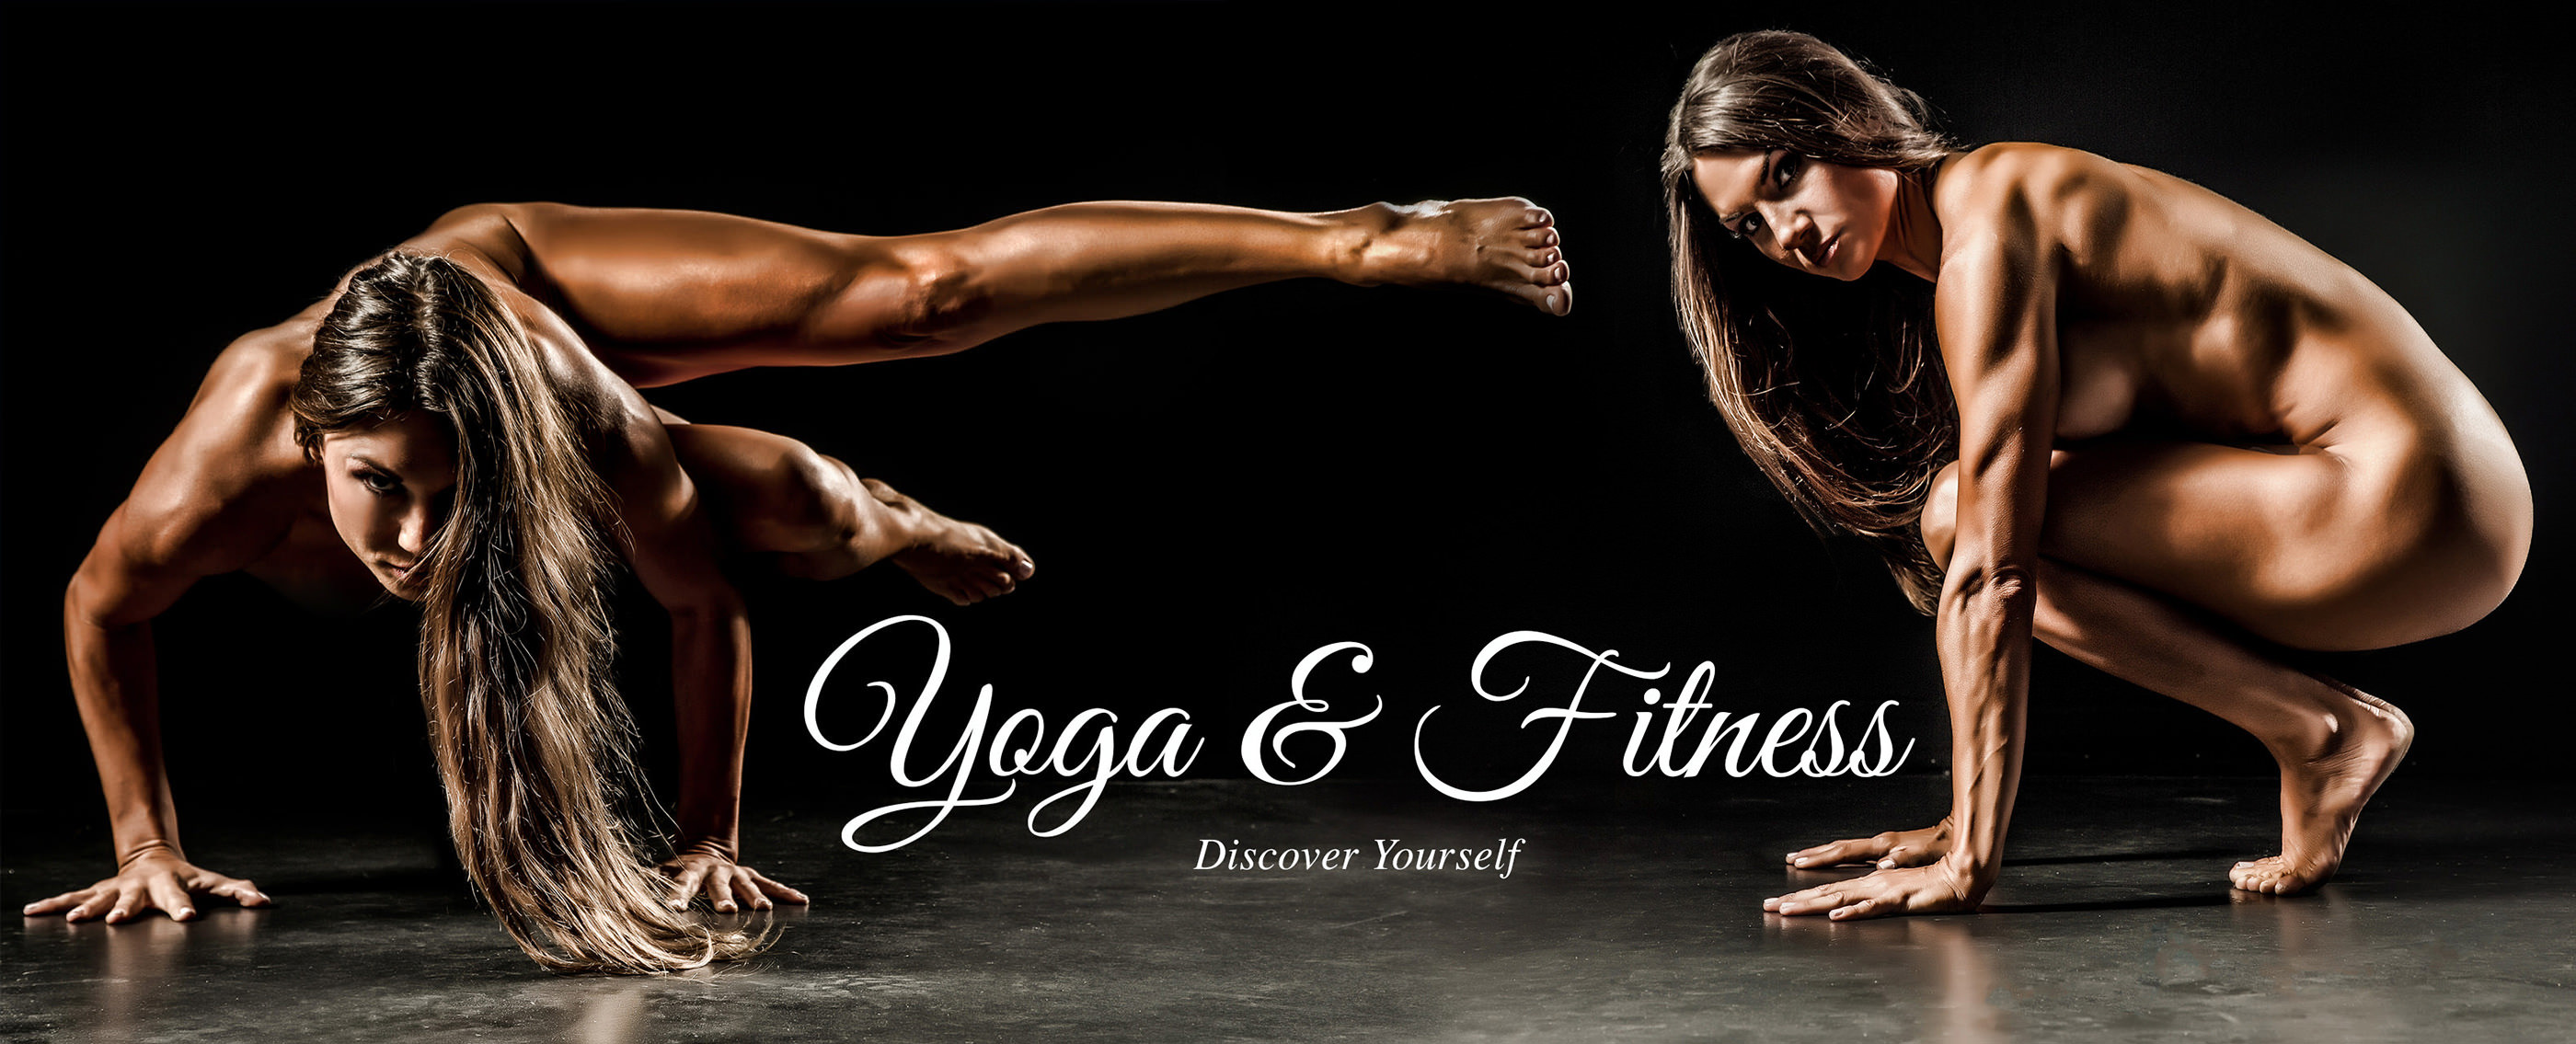 Lauren Abraham Yoga & Fitness